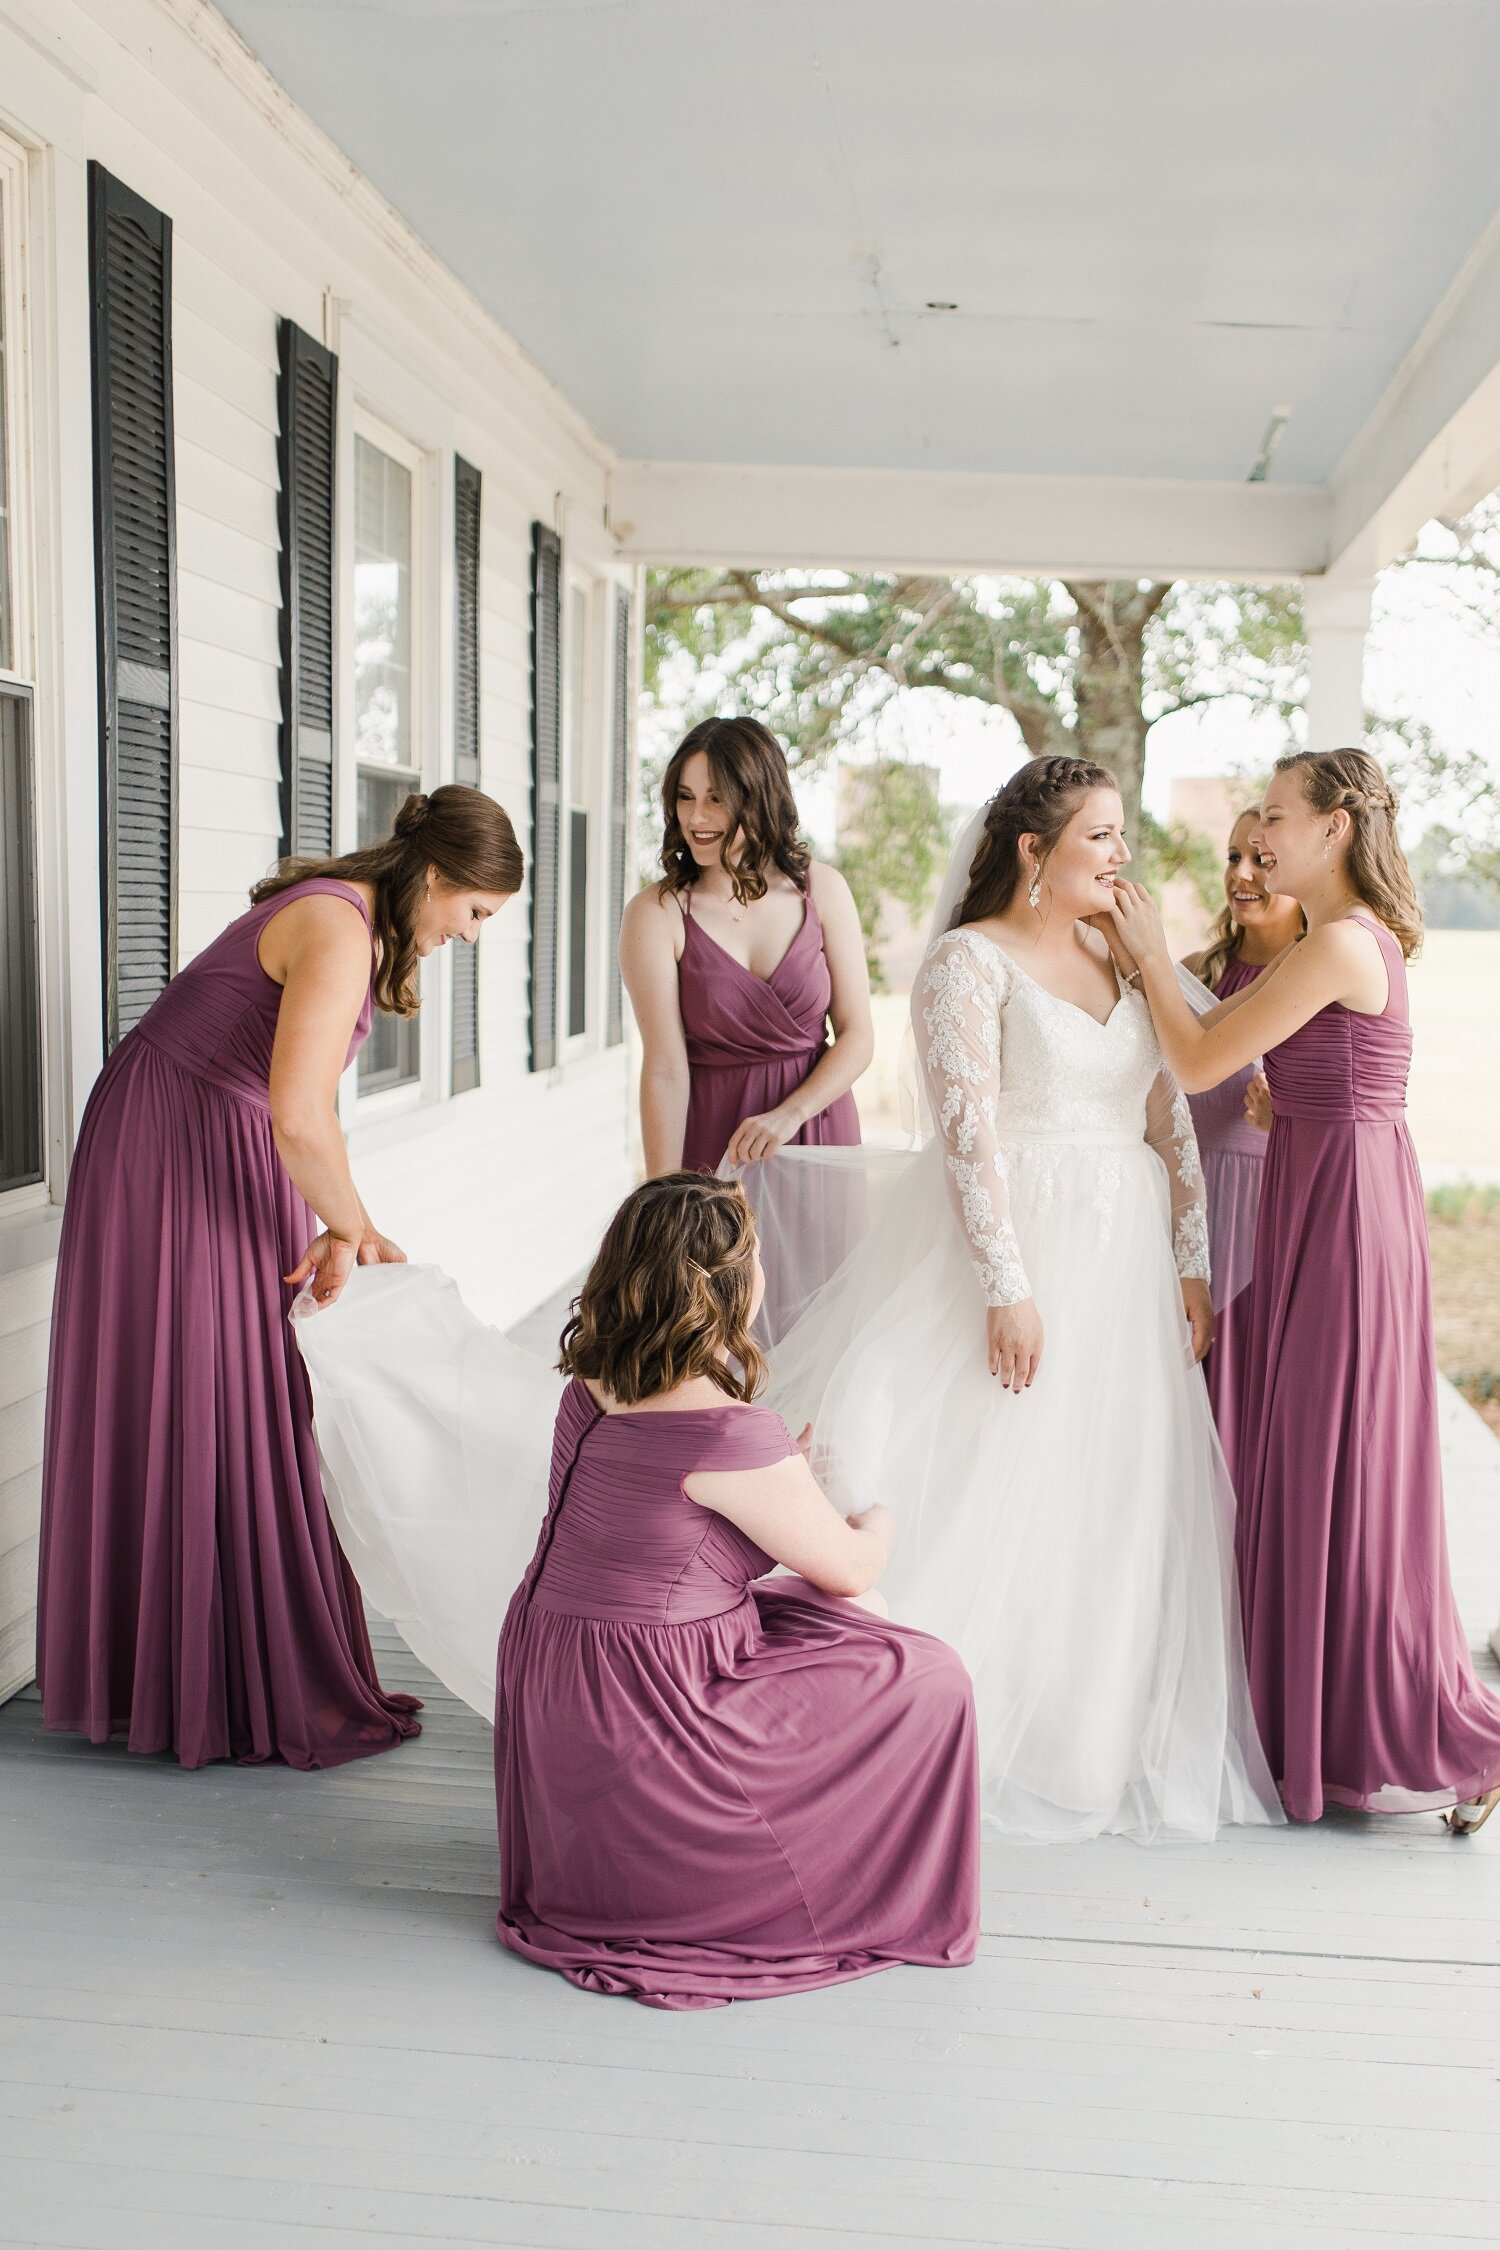 Hemphill Wedding - Shea's Favorites_-38.jpg